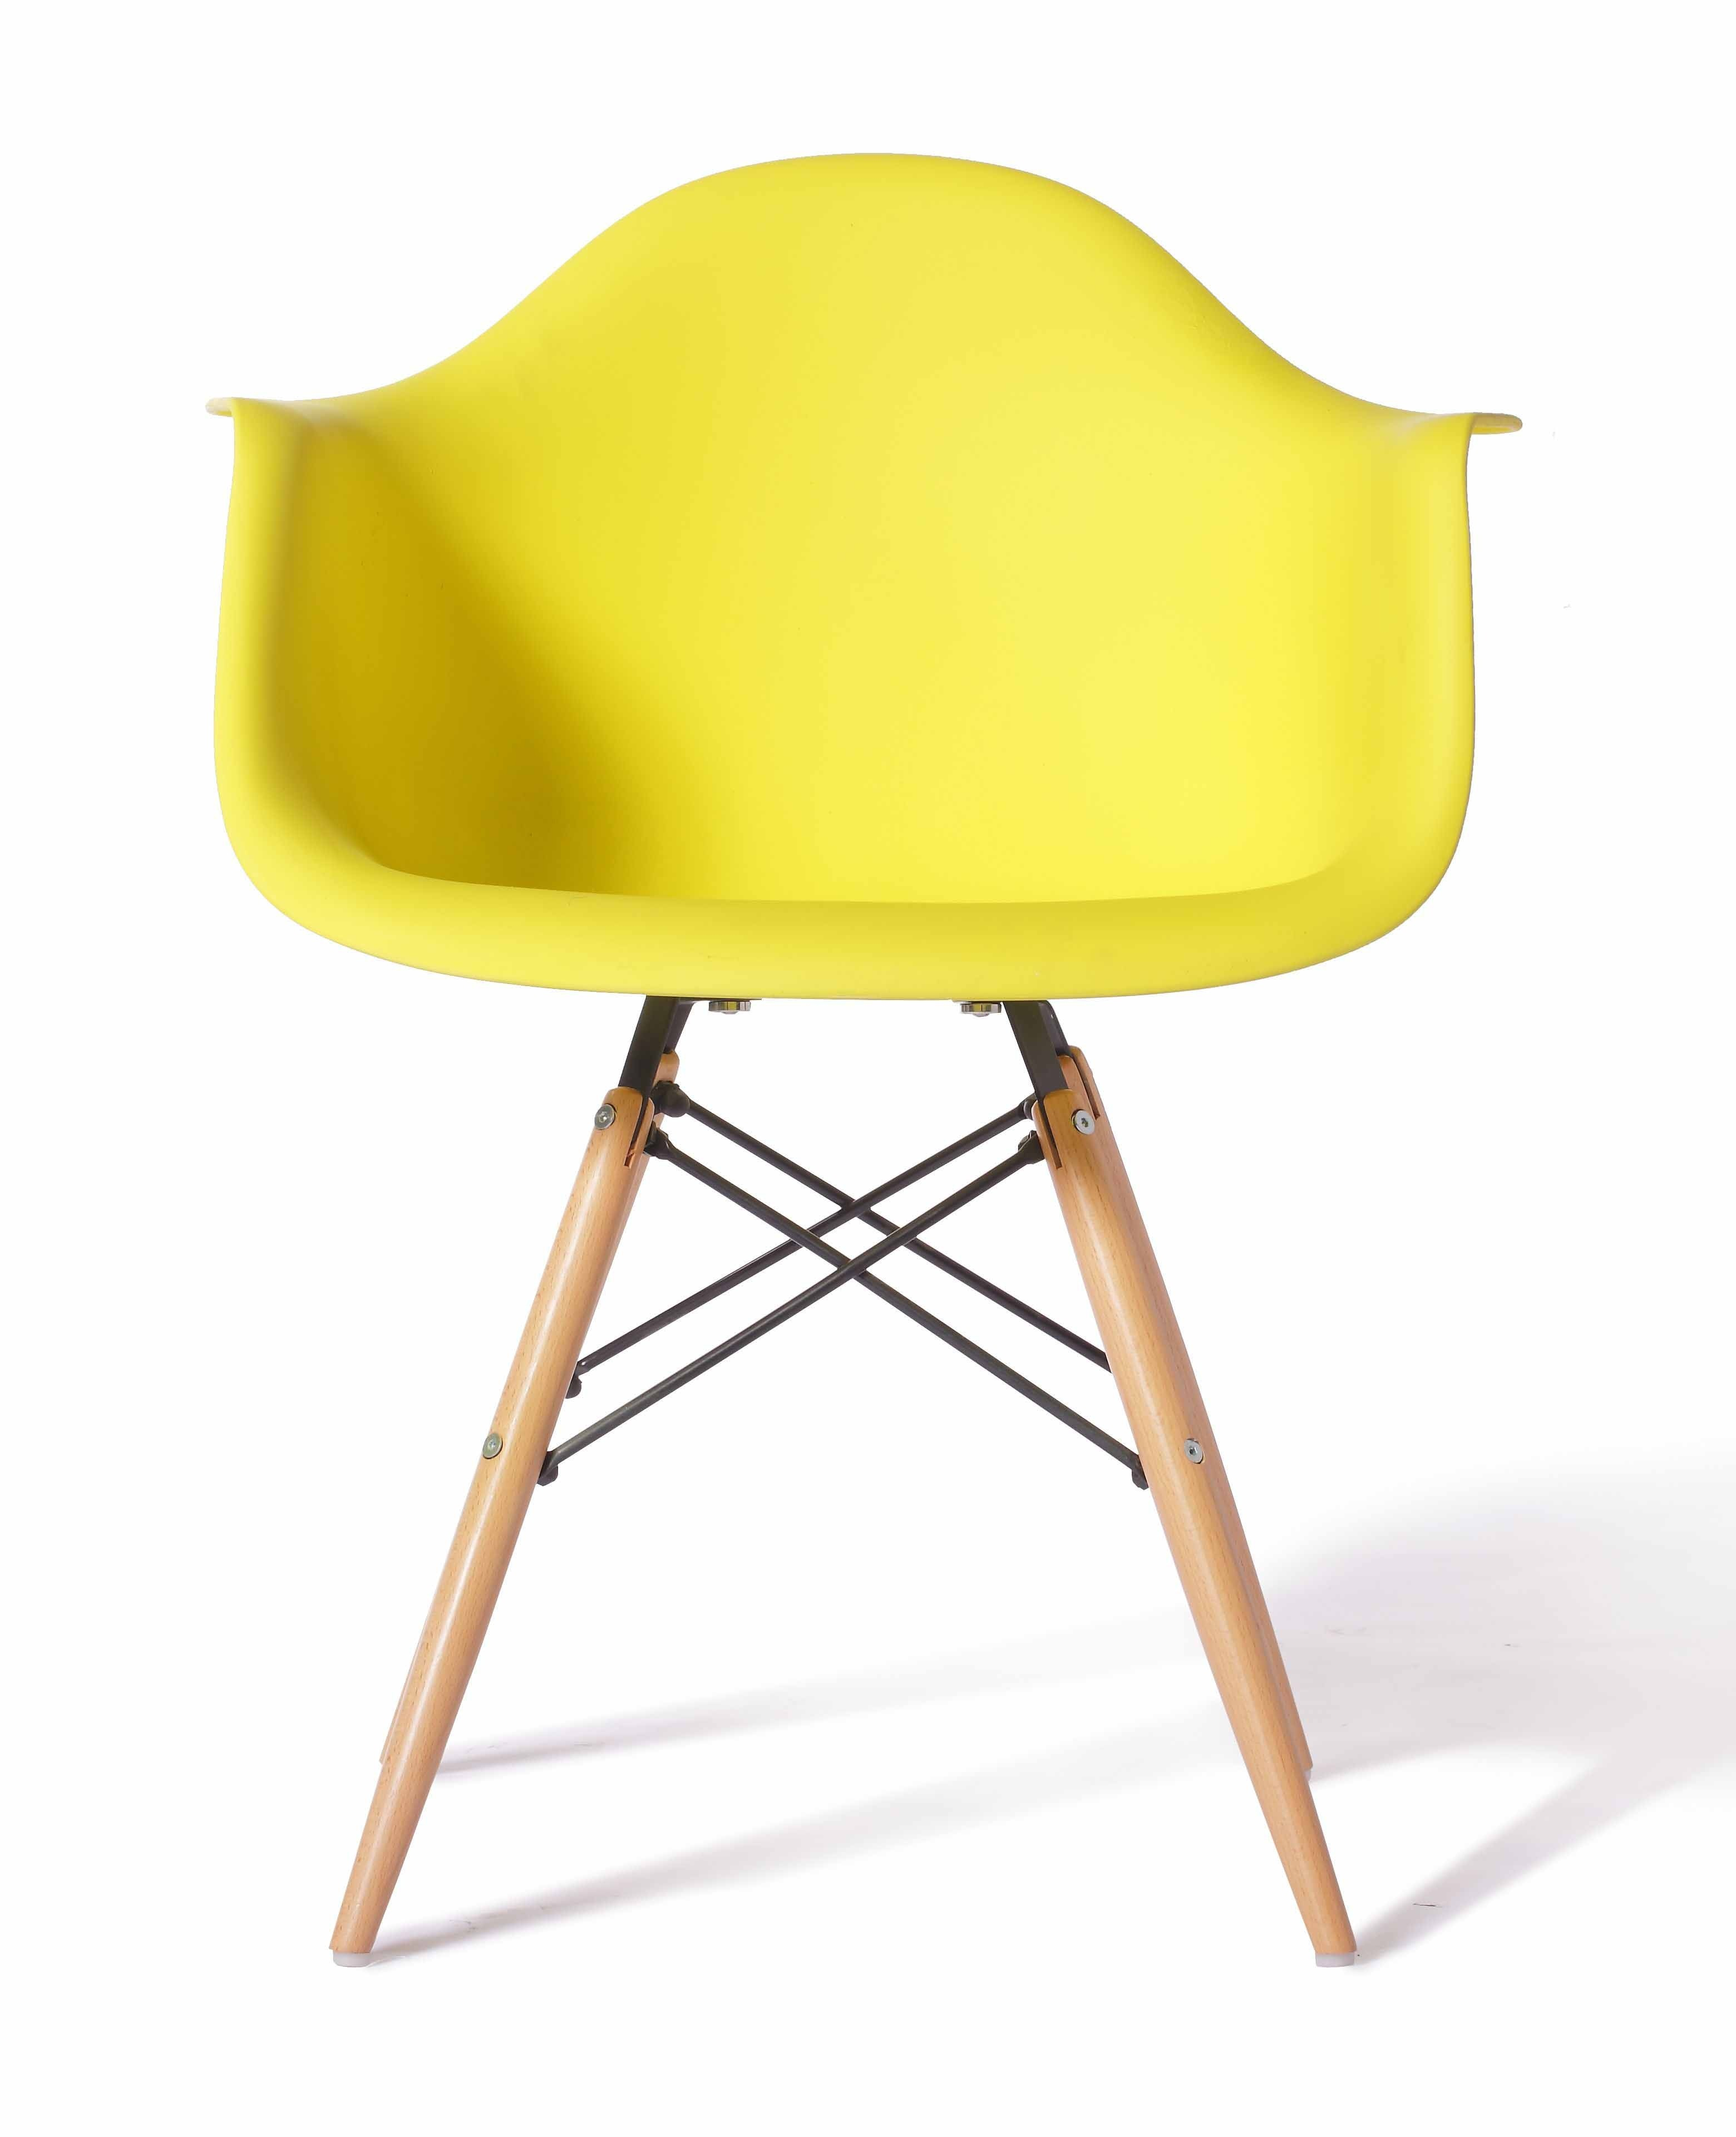 Eames Replica Eames Replica Designer Arm Chair Yellow